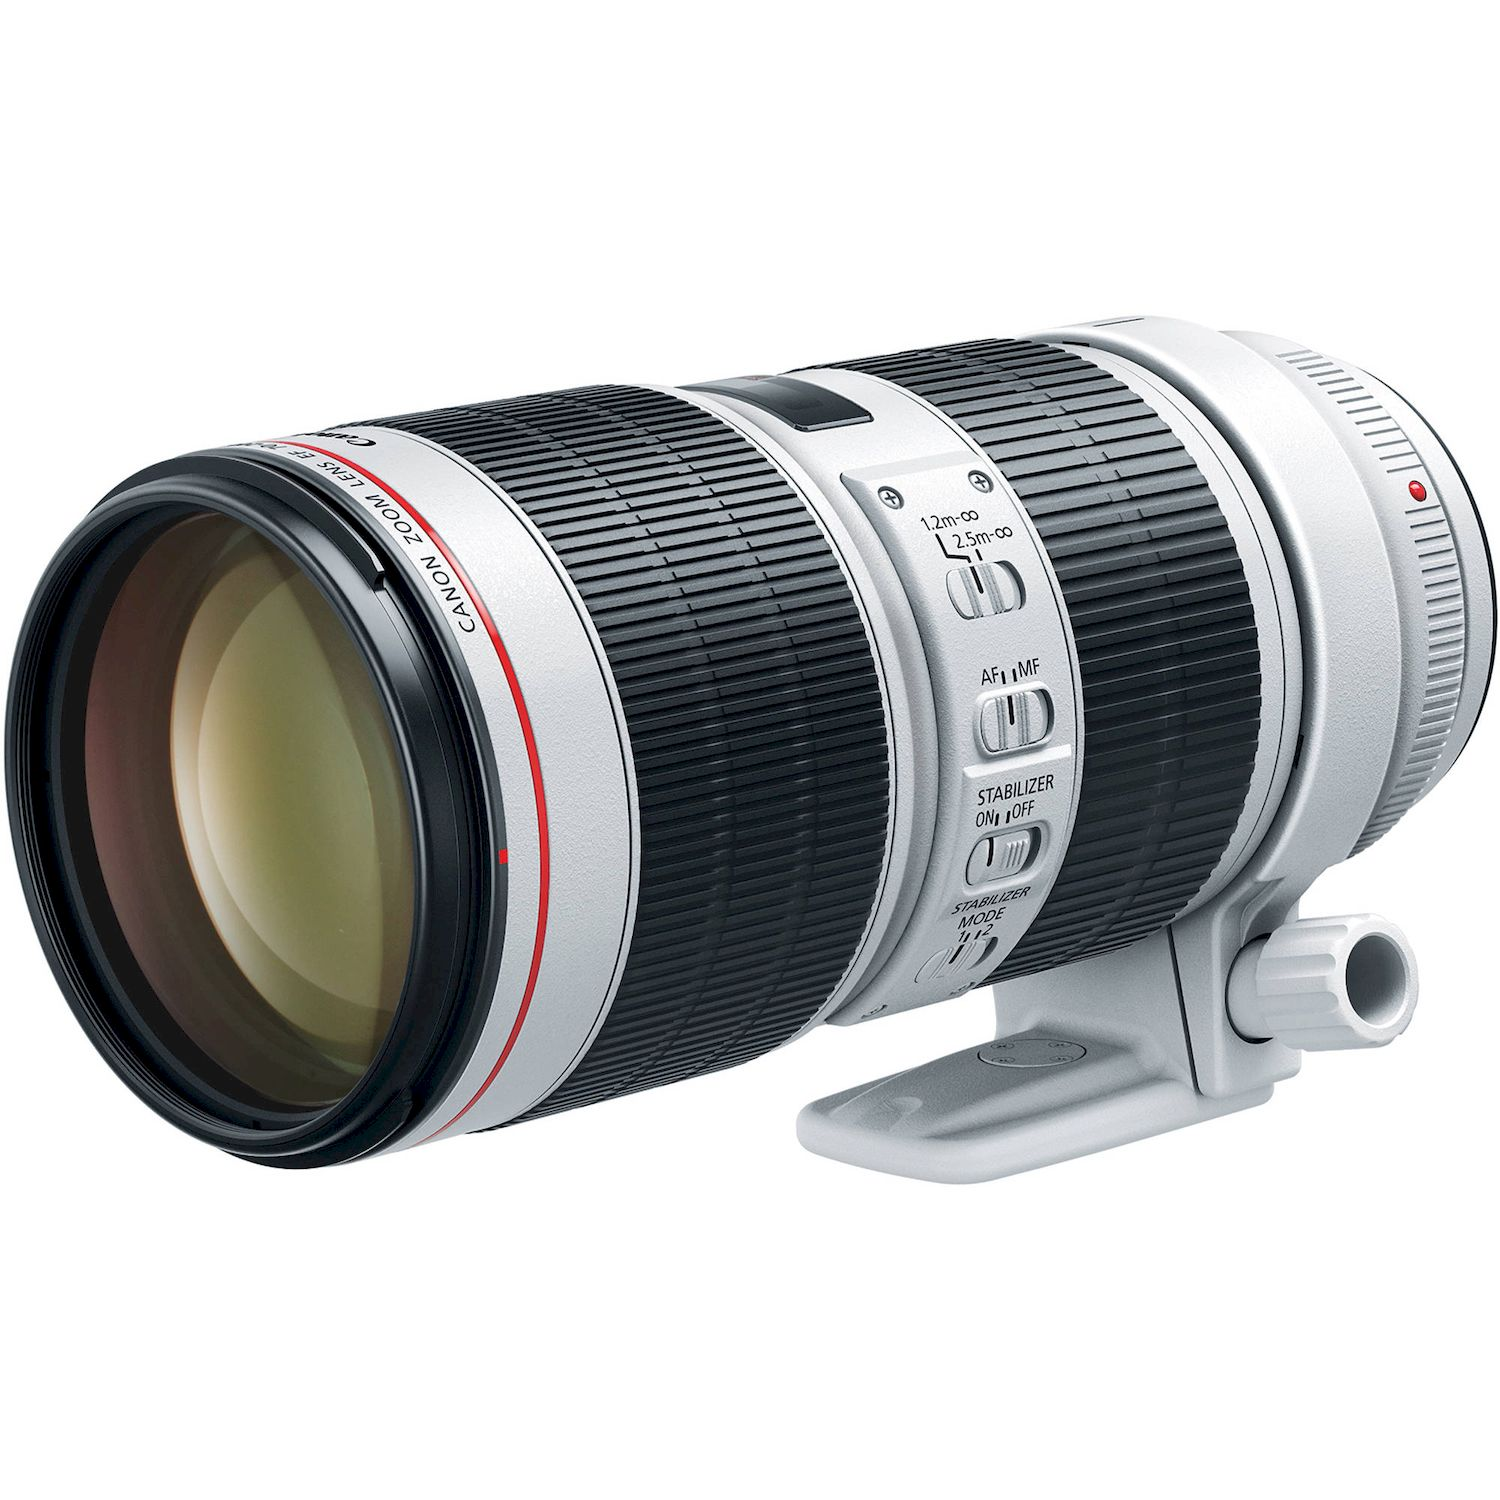 Объектив Canon EF 70-200mm f 2.8L IS III USM объектив